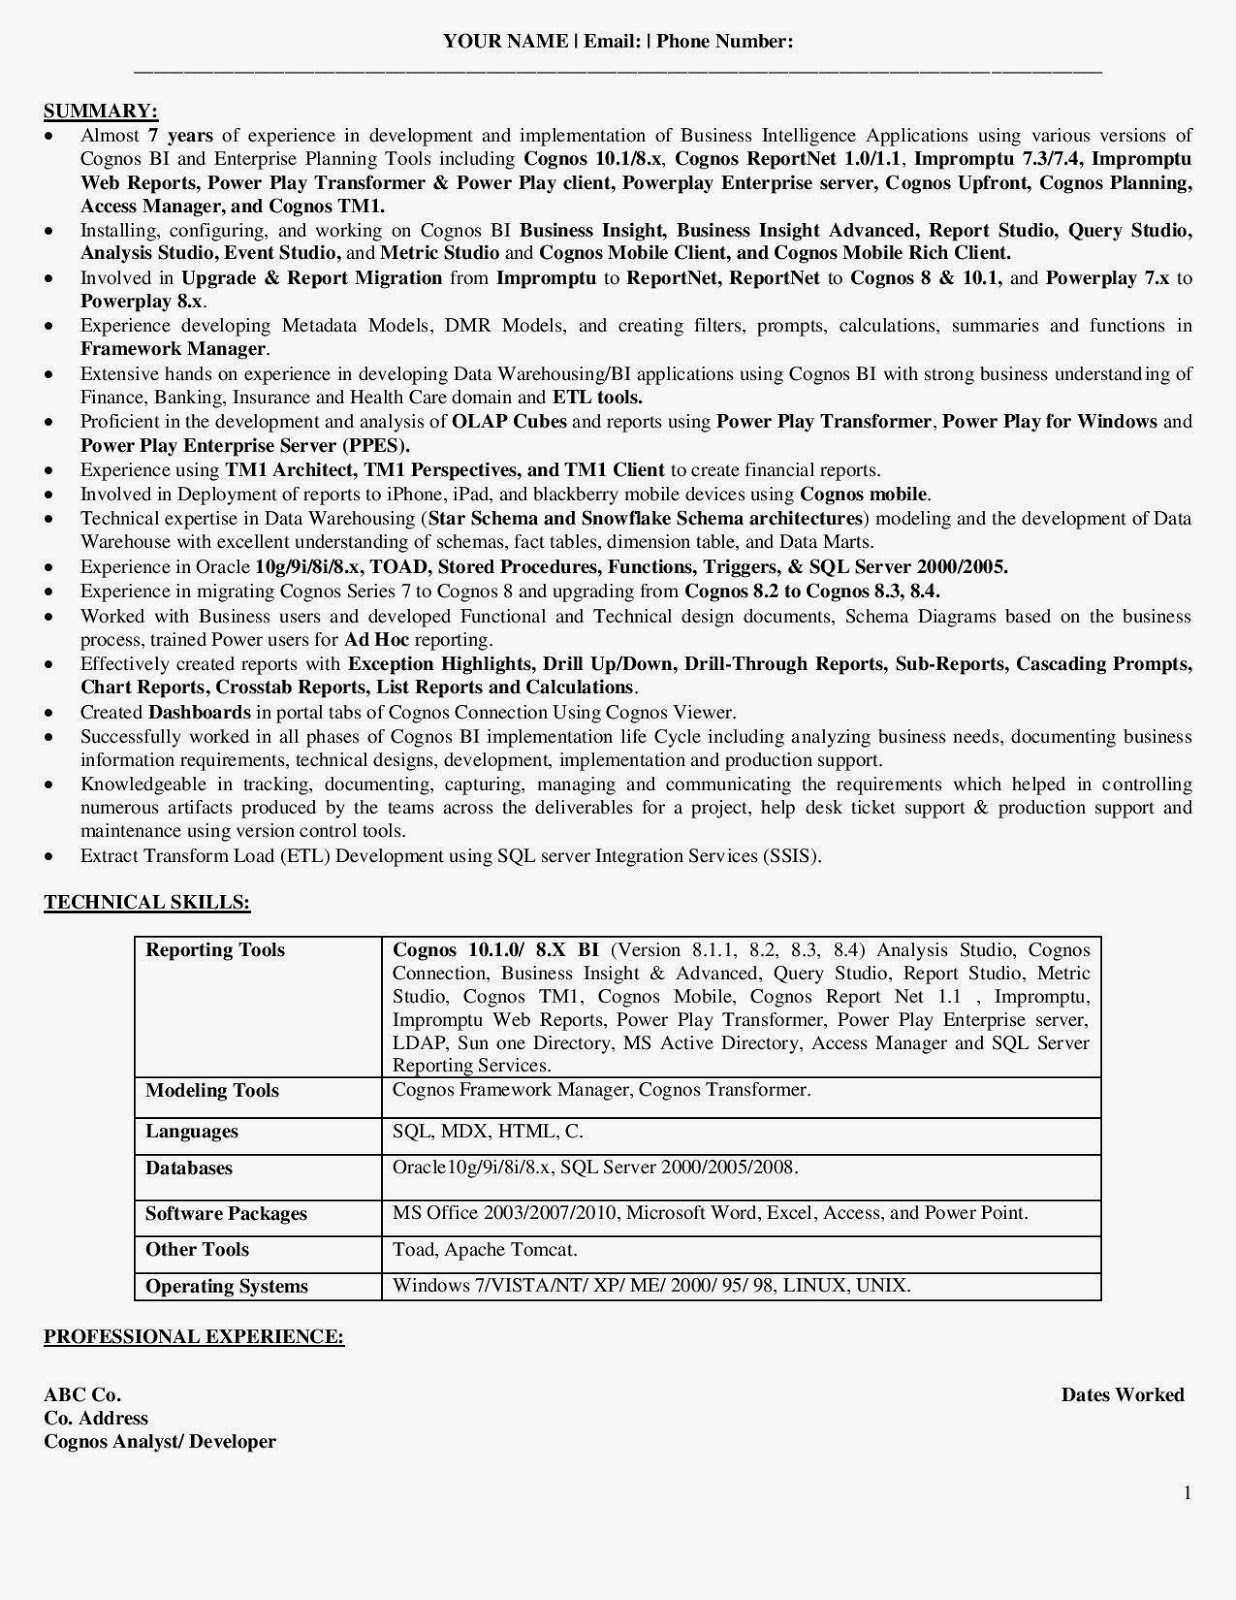 Babysitter Resume Template   Resume Format Download Pdf Area Sales Manager Cover Letter Resume Copies resume copies copies of cover letter for employment template  copies of cover letter for